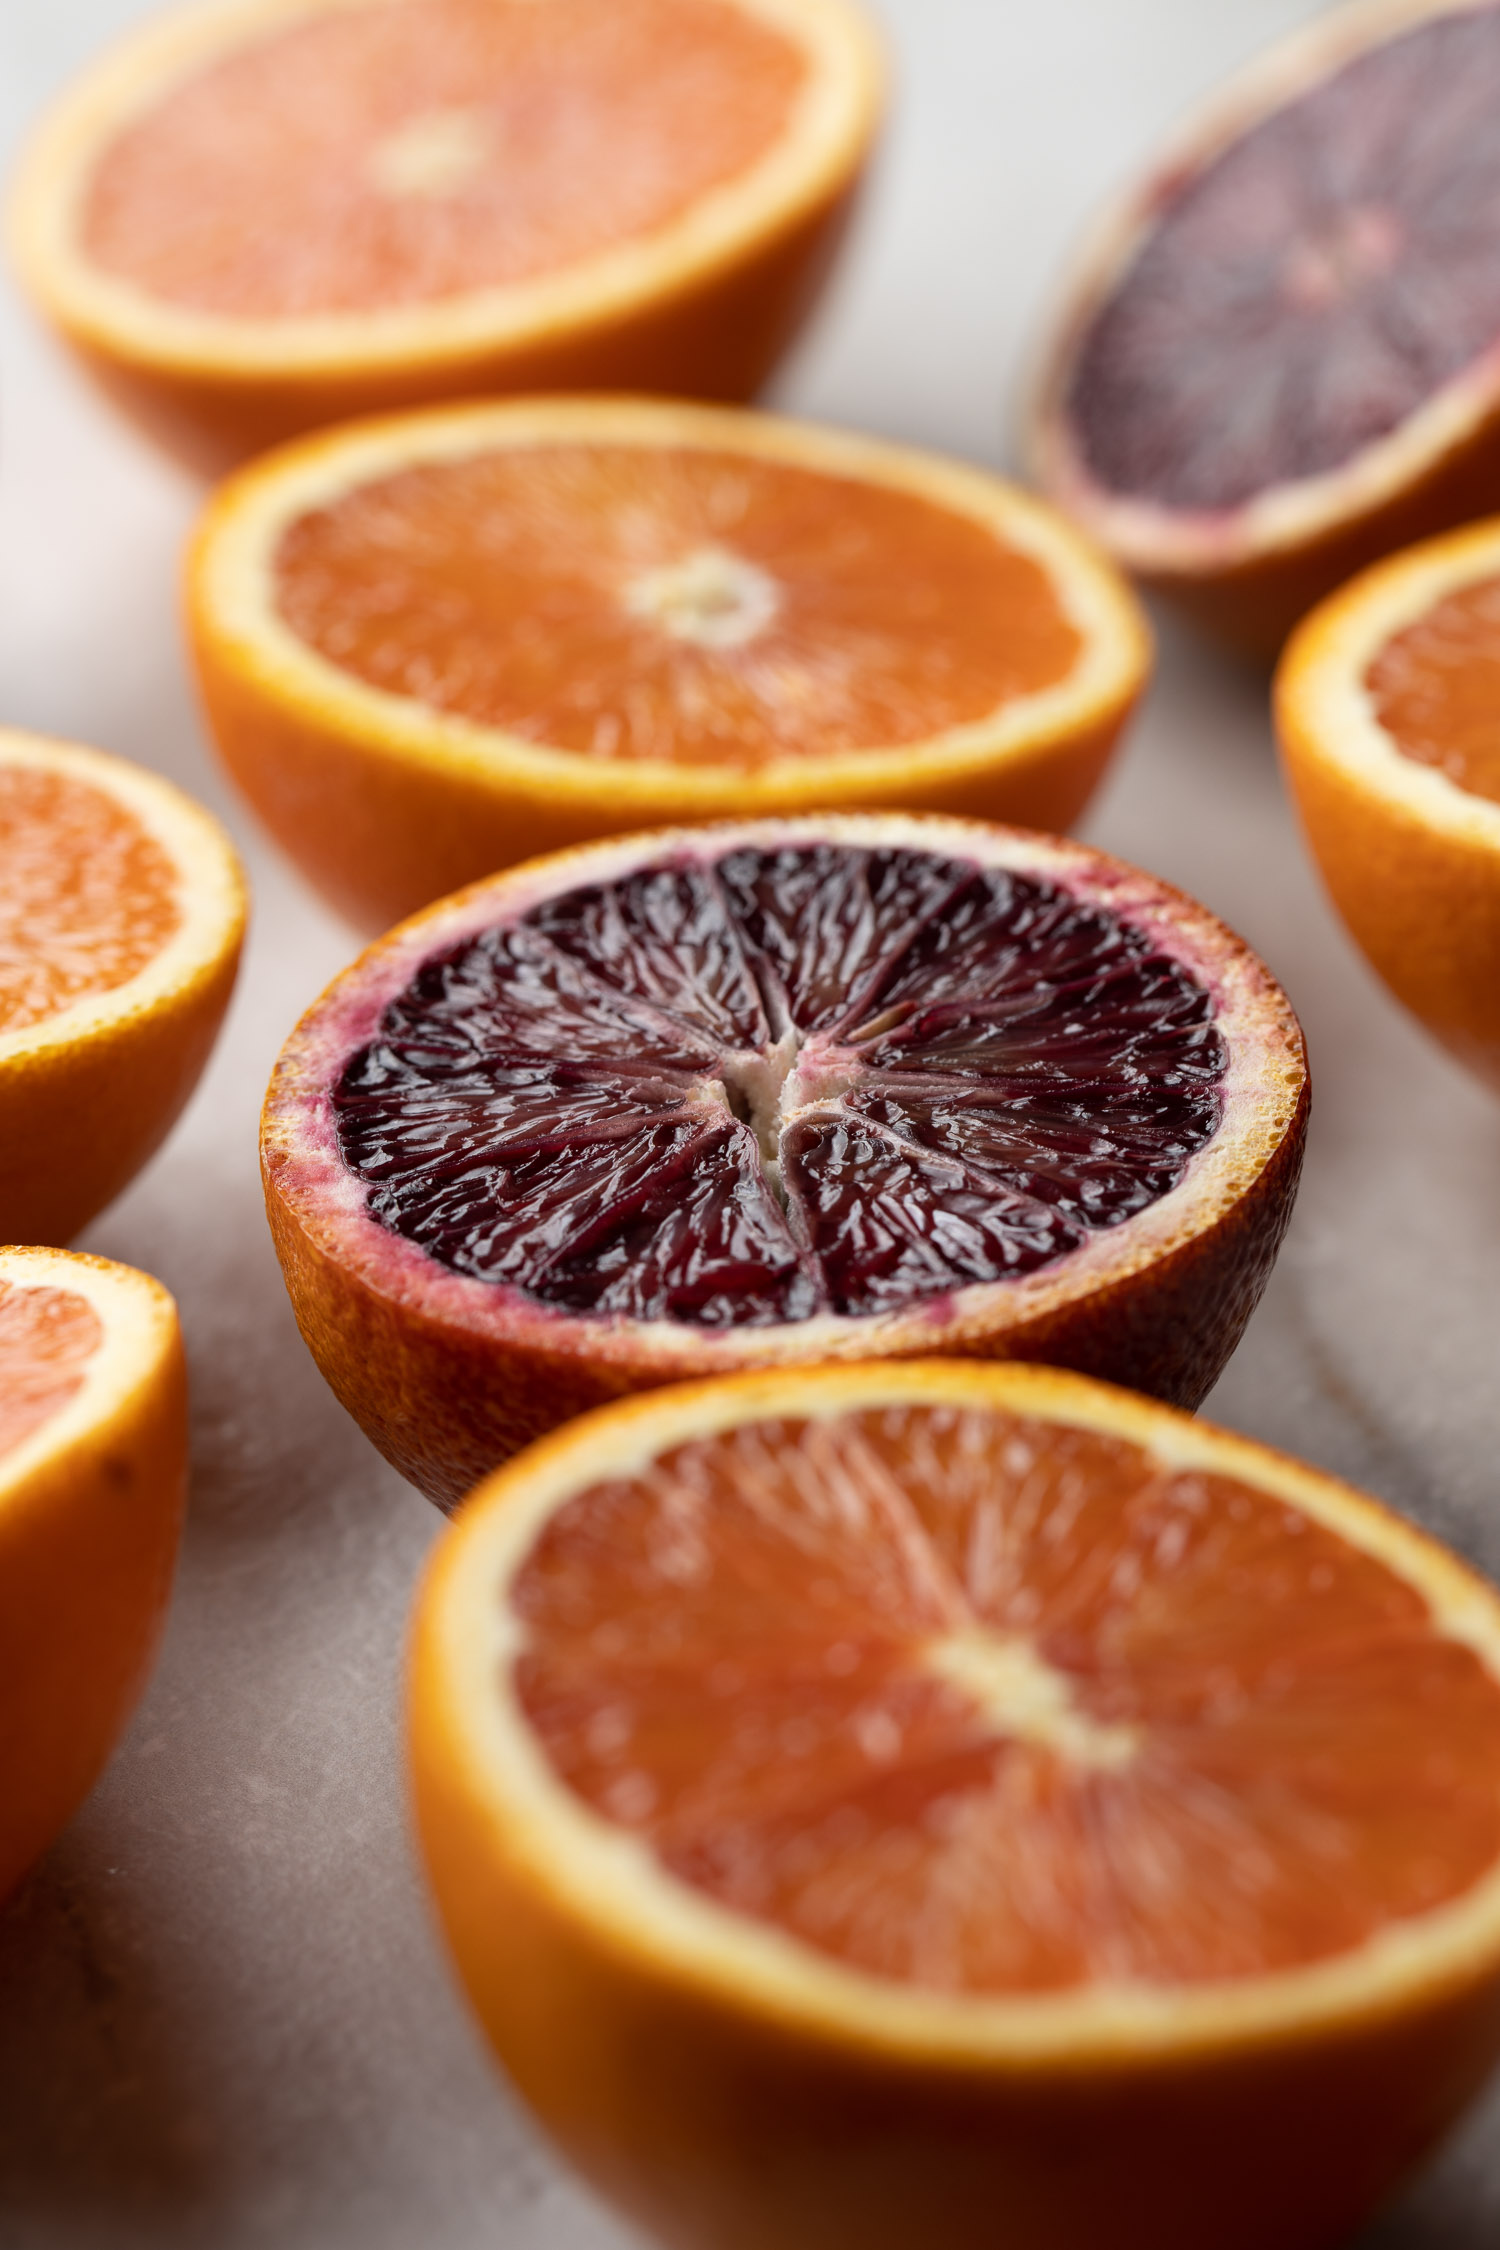 red blood oranges and regular oranges sliced in half